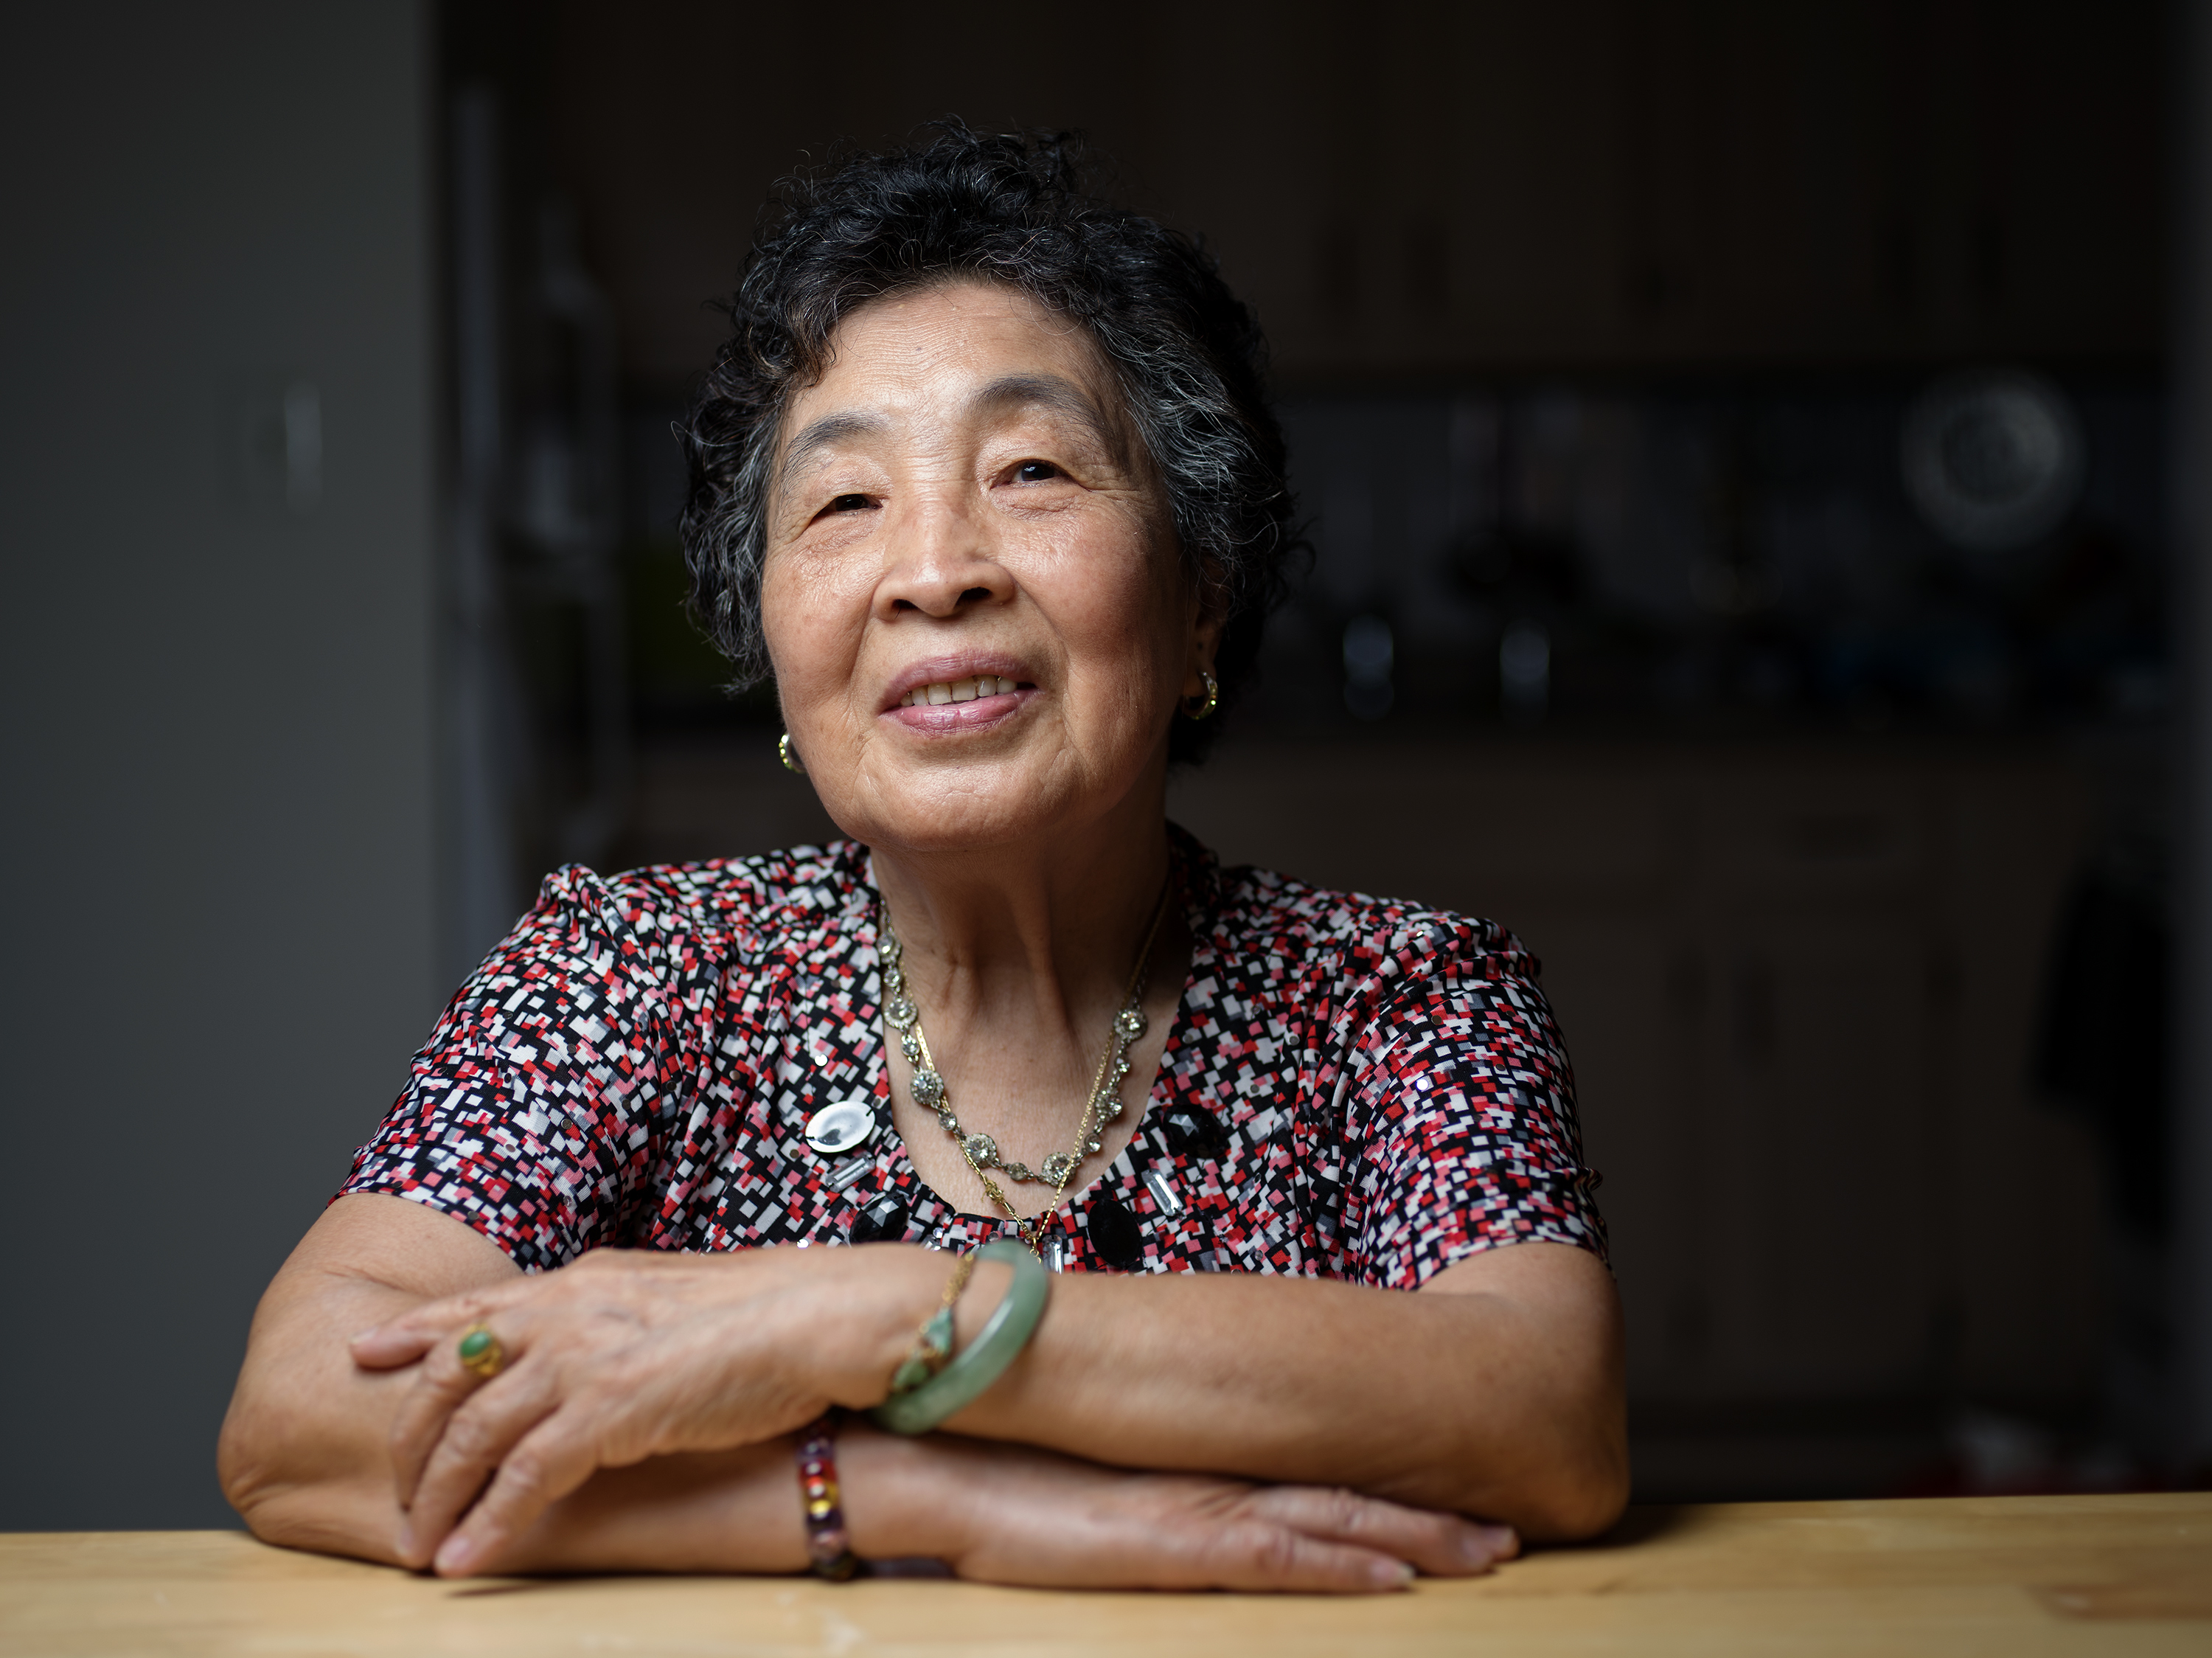 'Sometimes there are too many ingredients in a kitchen, and I don't like to use all of them,' says Biying Ni, who was born in Fuzhou, the capital of Fujian Province, China. 'Fuzhounese cuisine is plain and simple.' Bryan Thomas for NPR